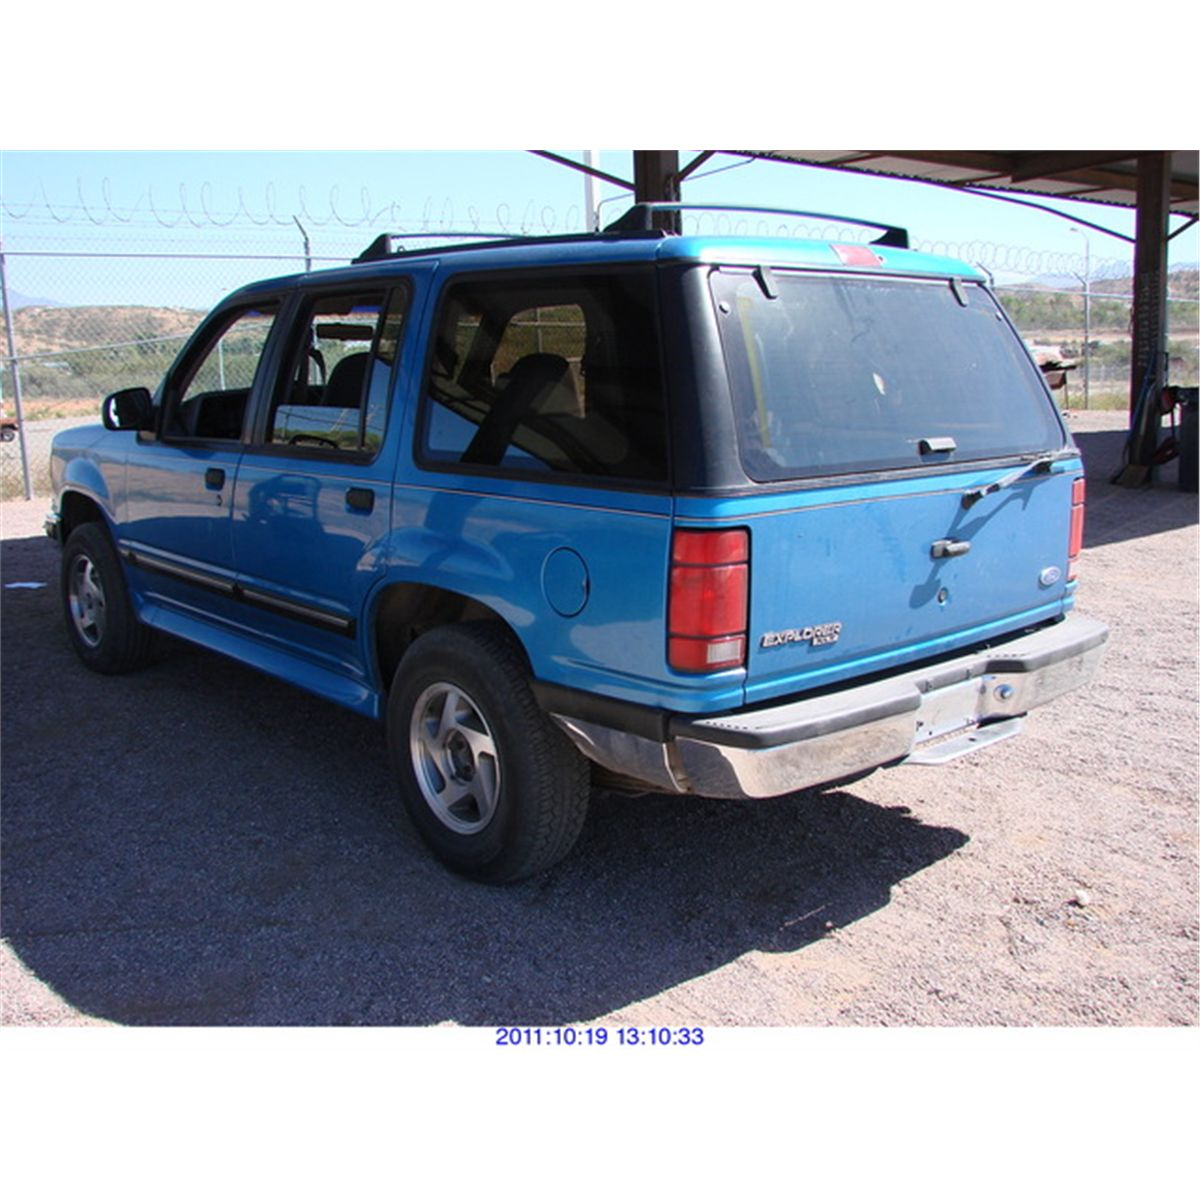 hight resolution of  image 3 1994 ford explorer